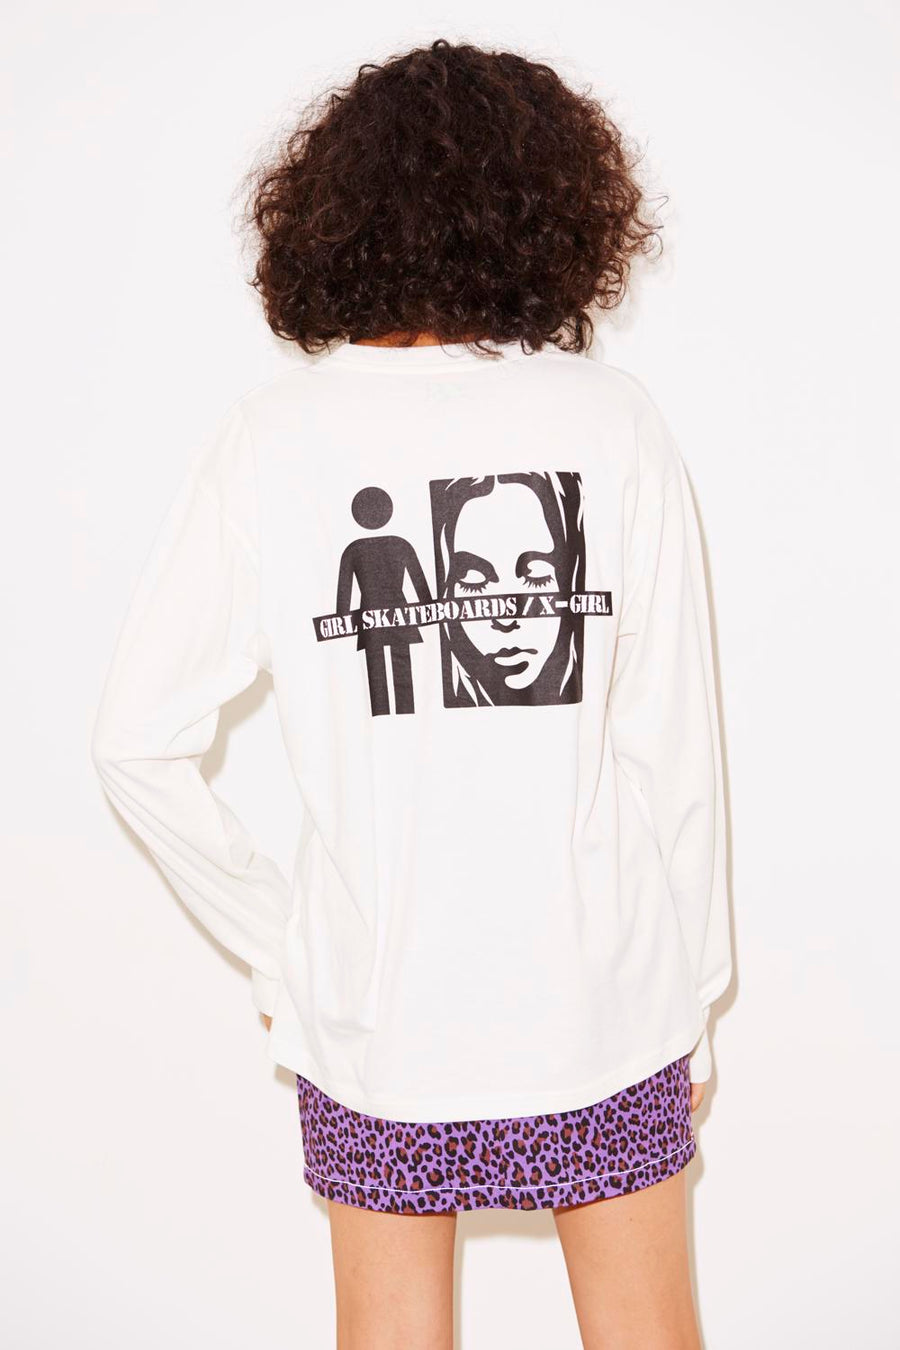 #1 X-girl x GIRL SKATEBOARDS L/S BIG TEE